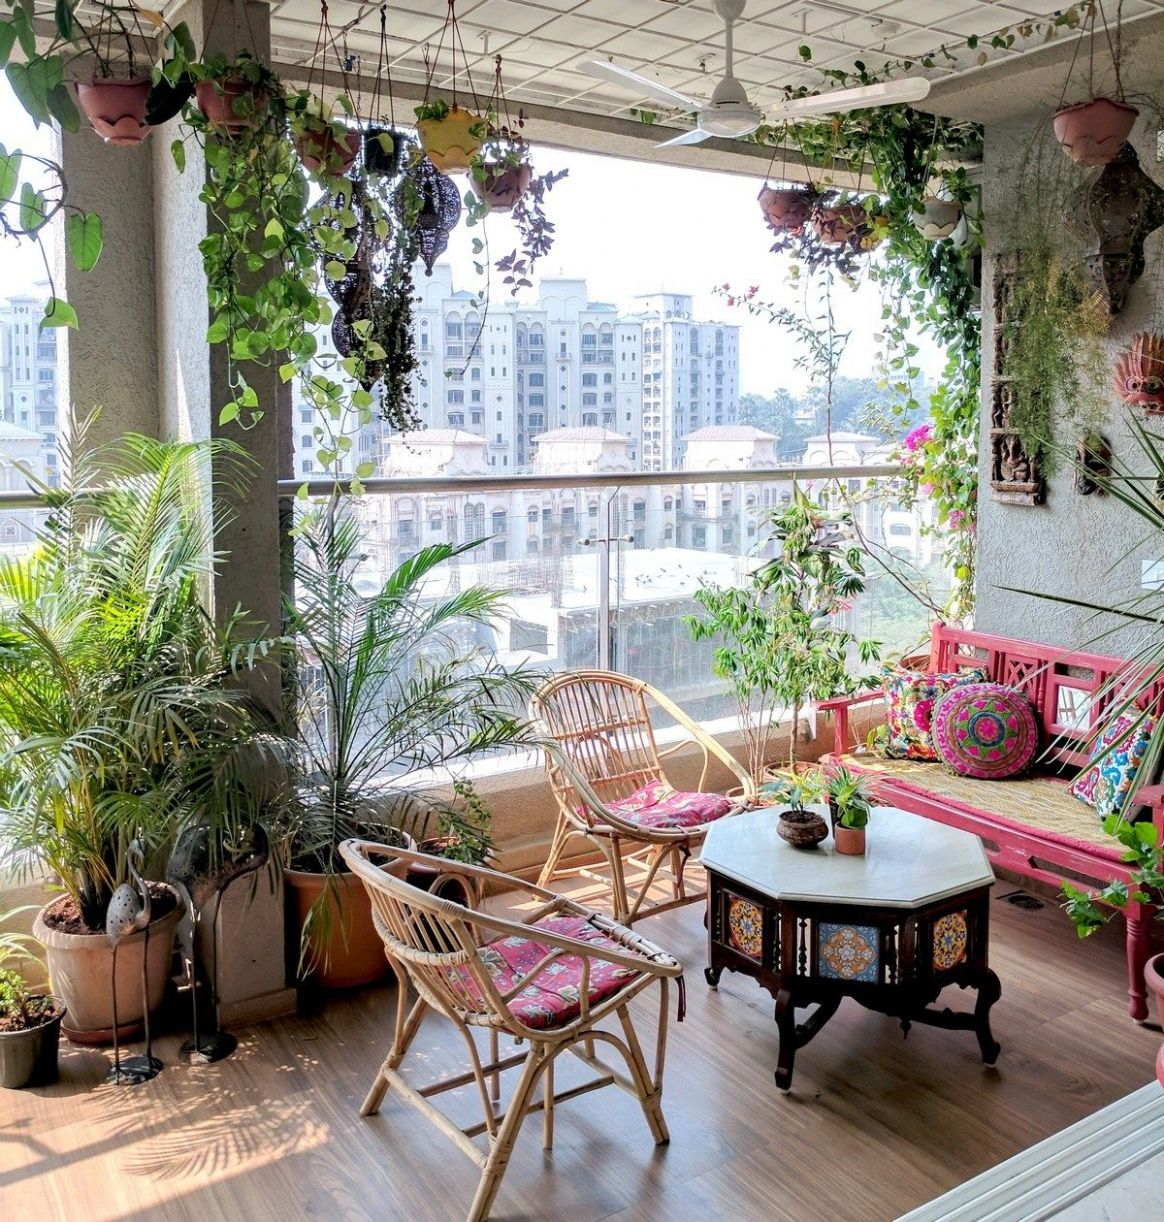 A Balcony Garden In Mumbai: Terrace Reveal | Terrace decor ..